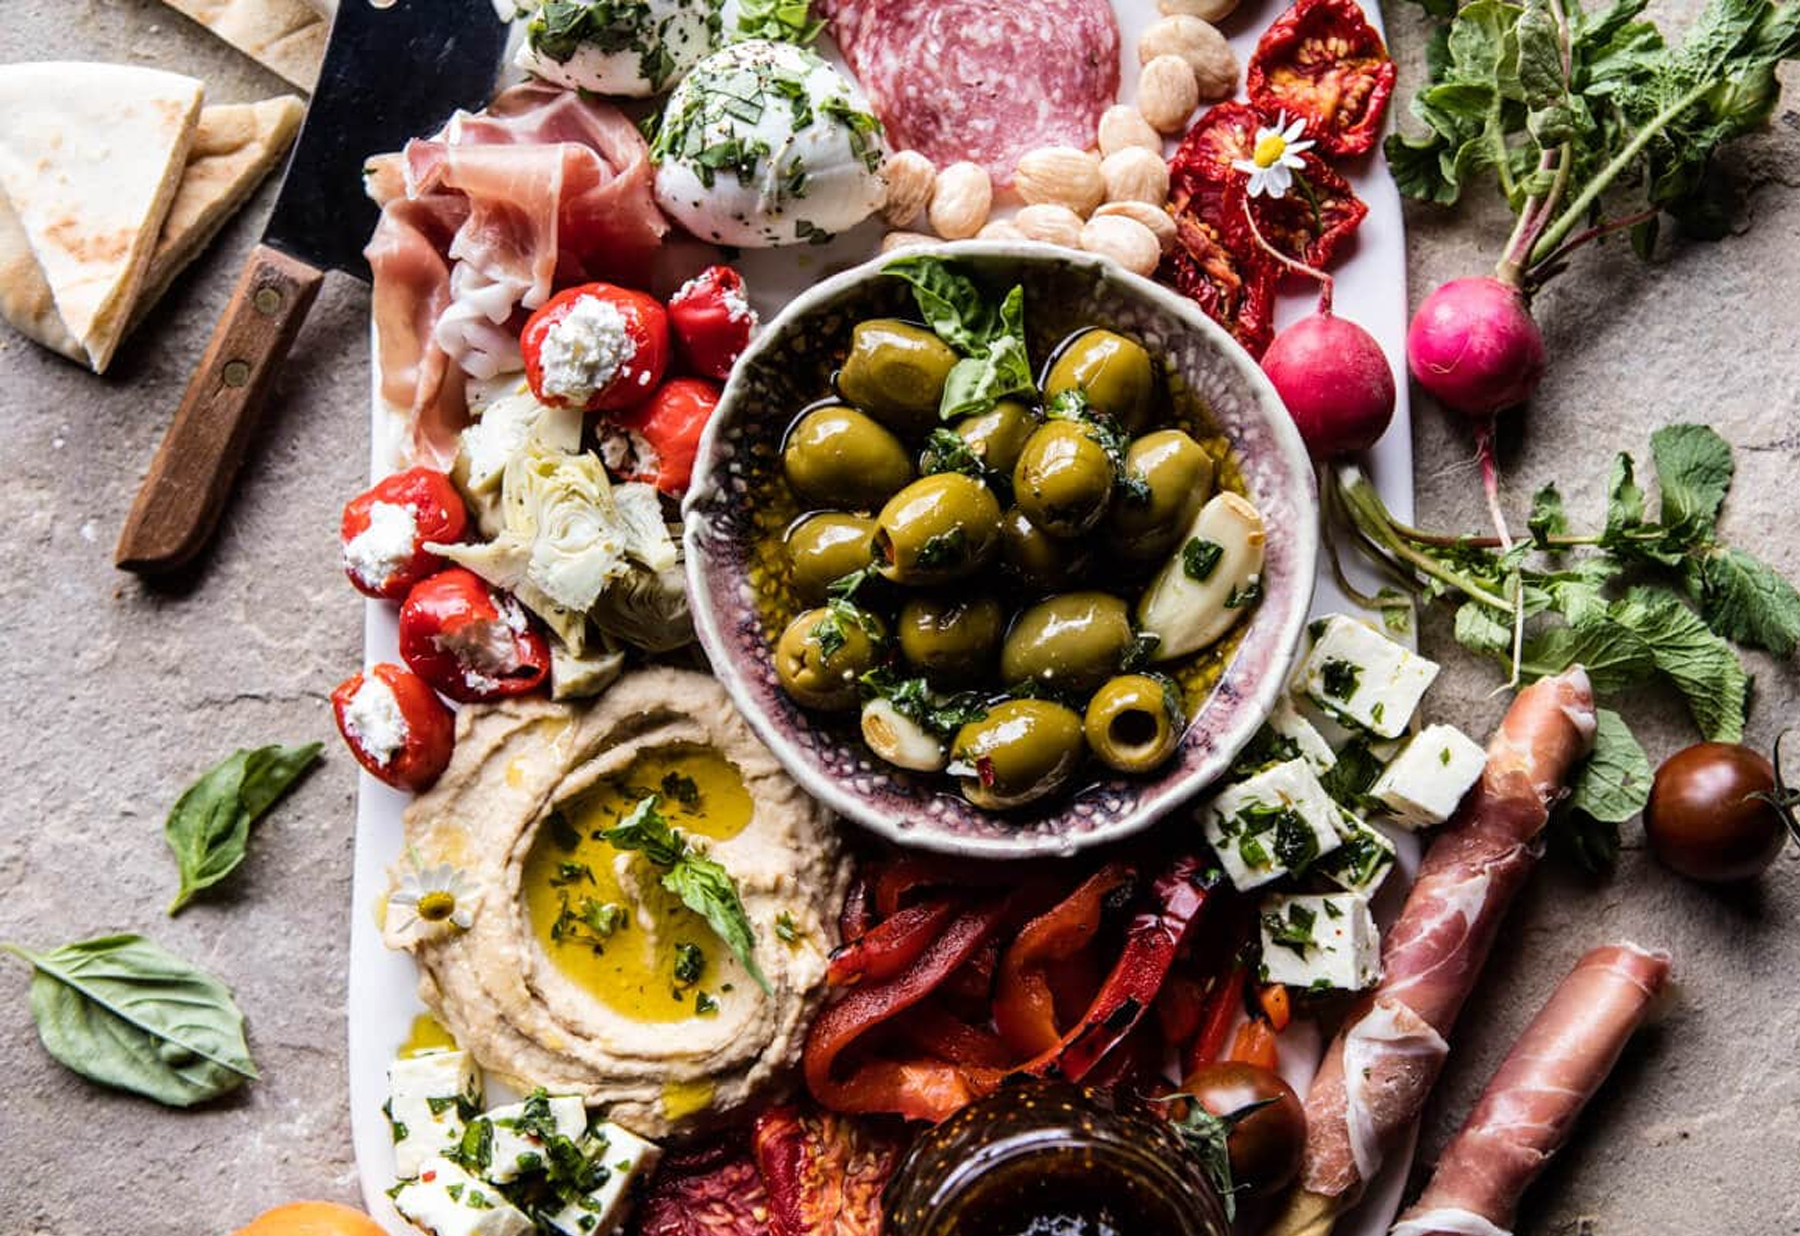 Party Platters: 11 Food Ideas That Make Hosting Easier